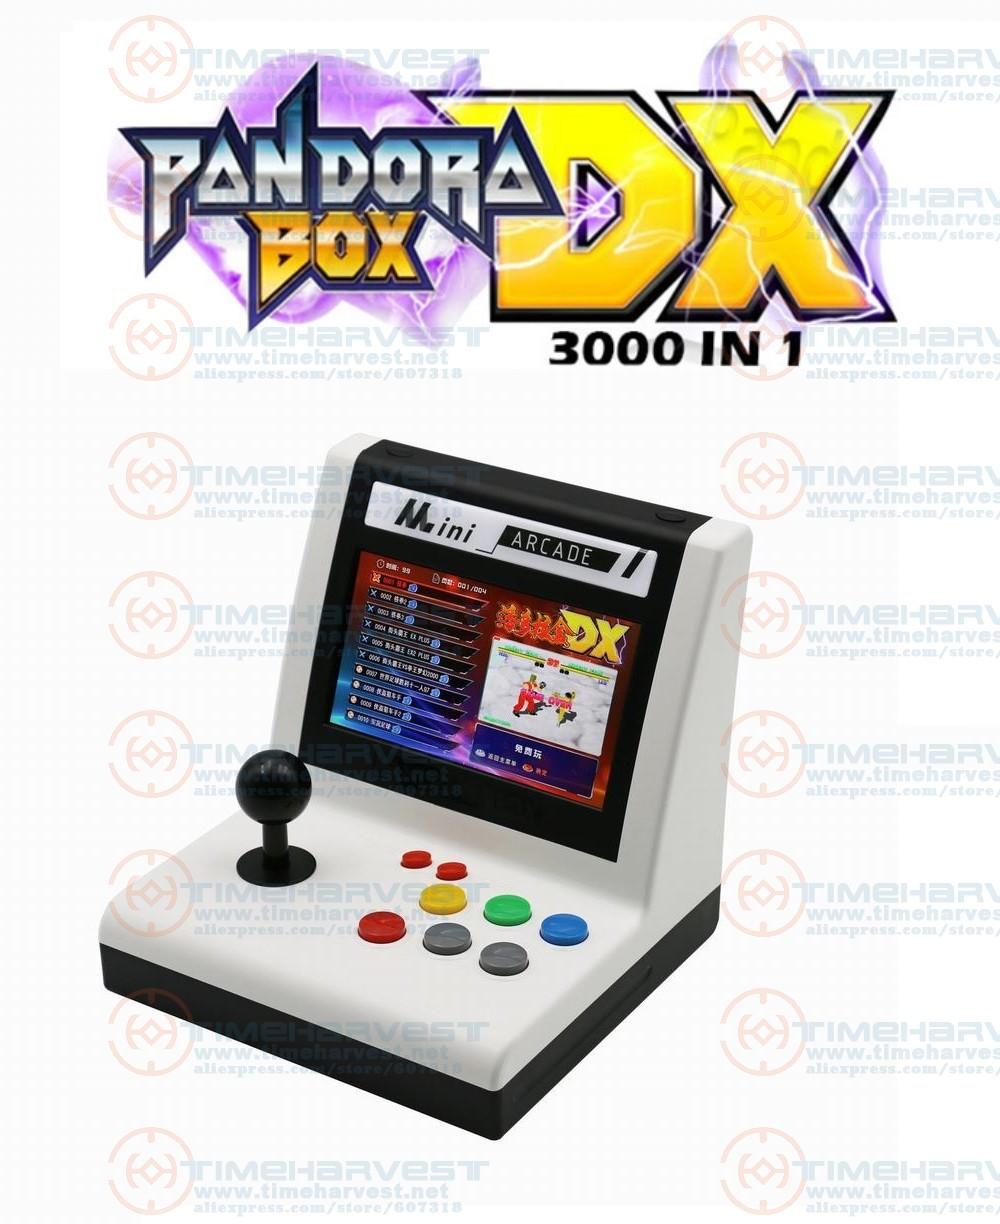 Mini Pandora Box DX Aracde Table Top 7 Inches LCD Screen Desktop Video Game Console Multi Games 3000 In 1 Arcade Game Machine